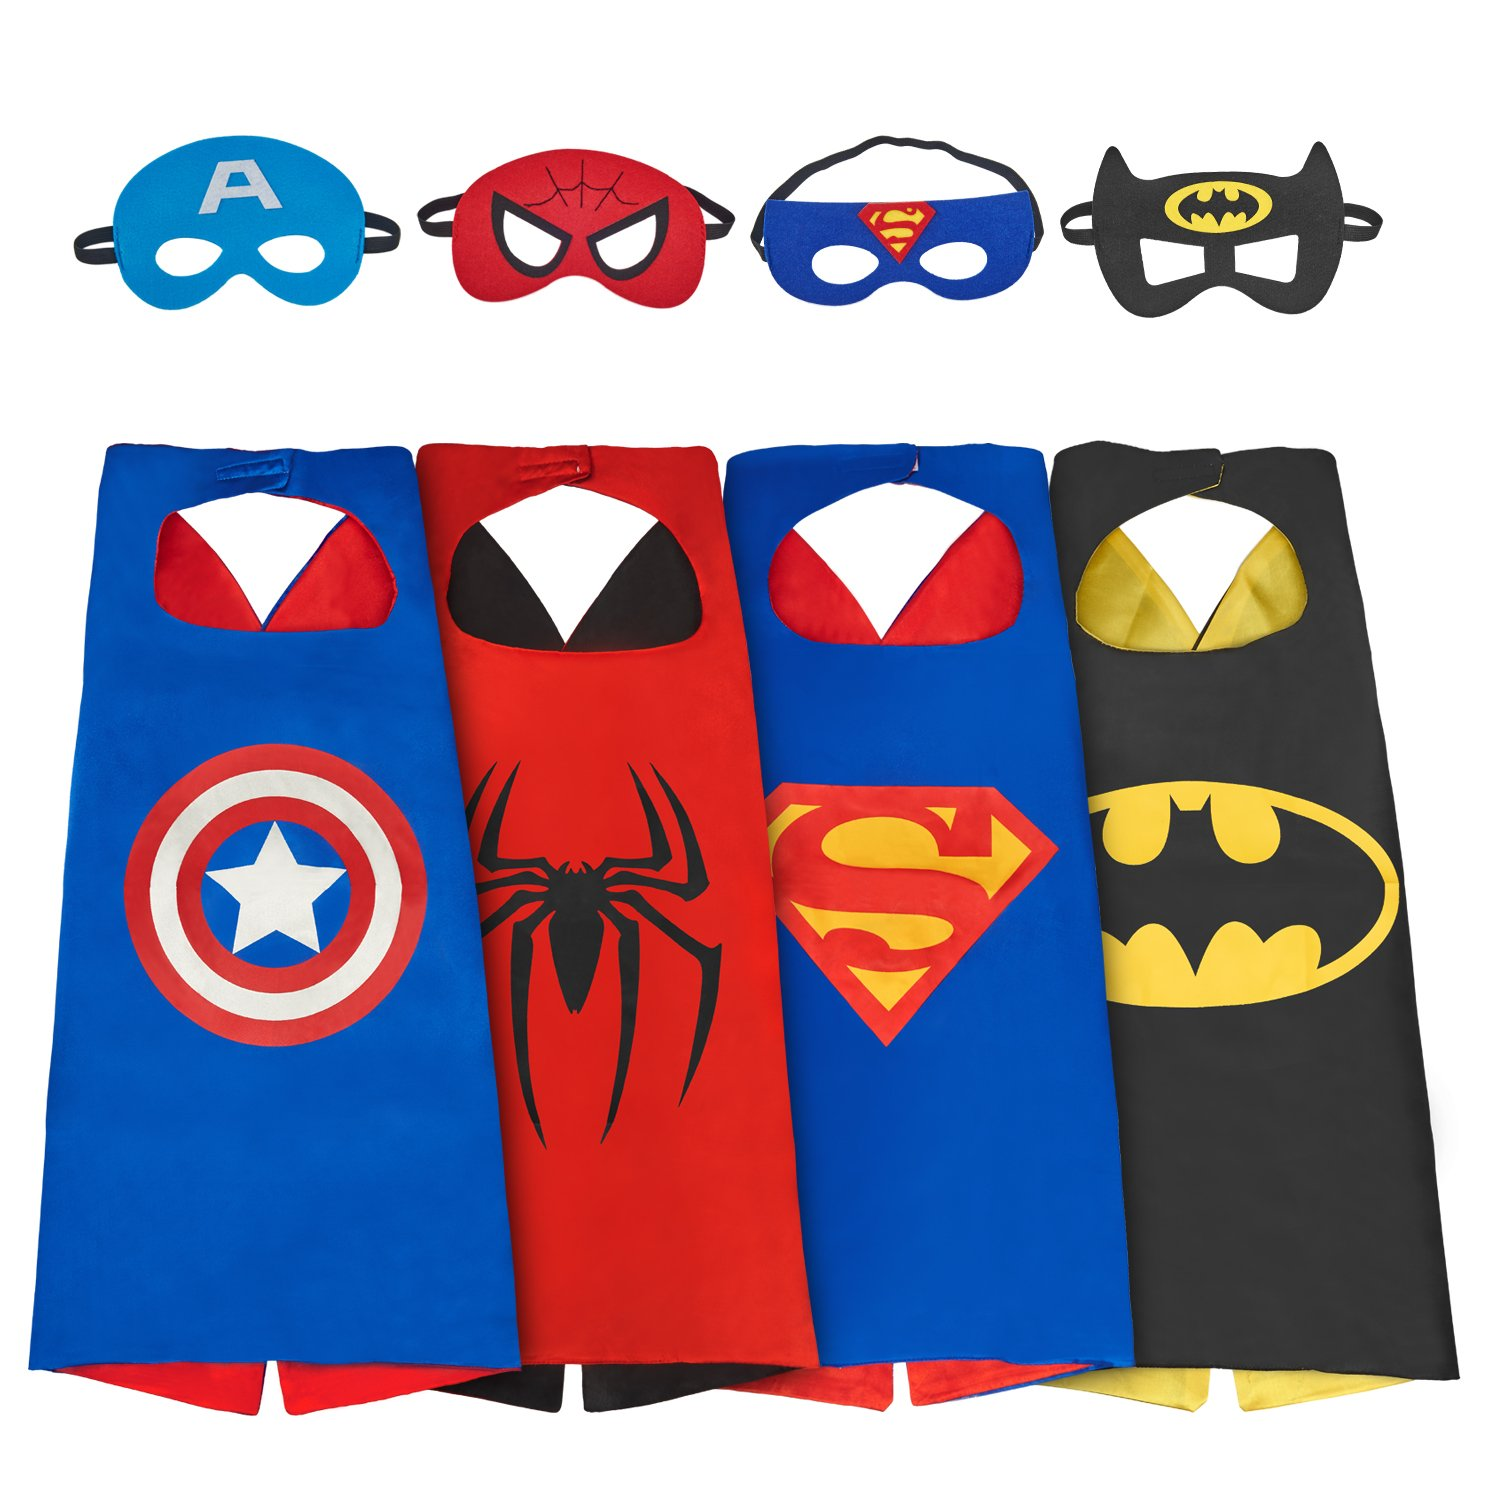 Babylian Super Hero Dress Up Costumes with Masks and Cape for Kids